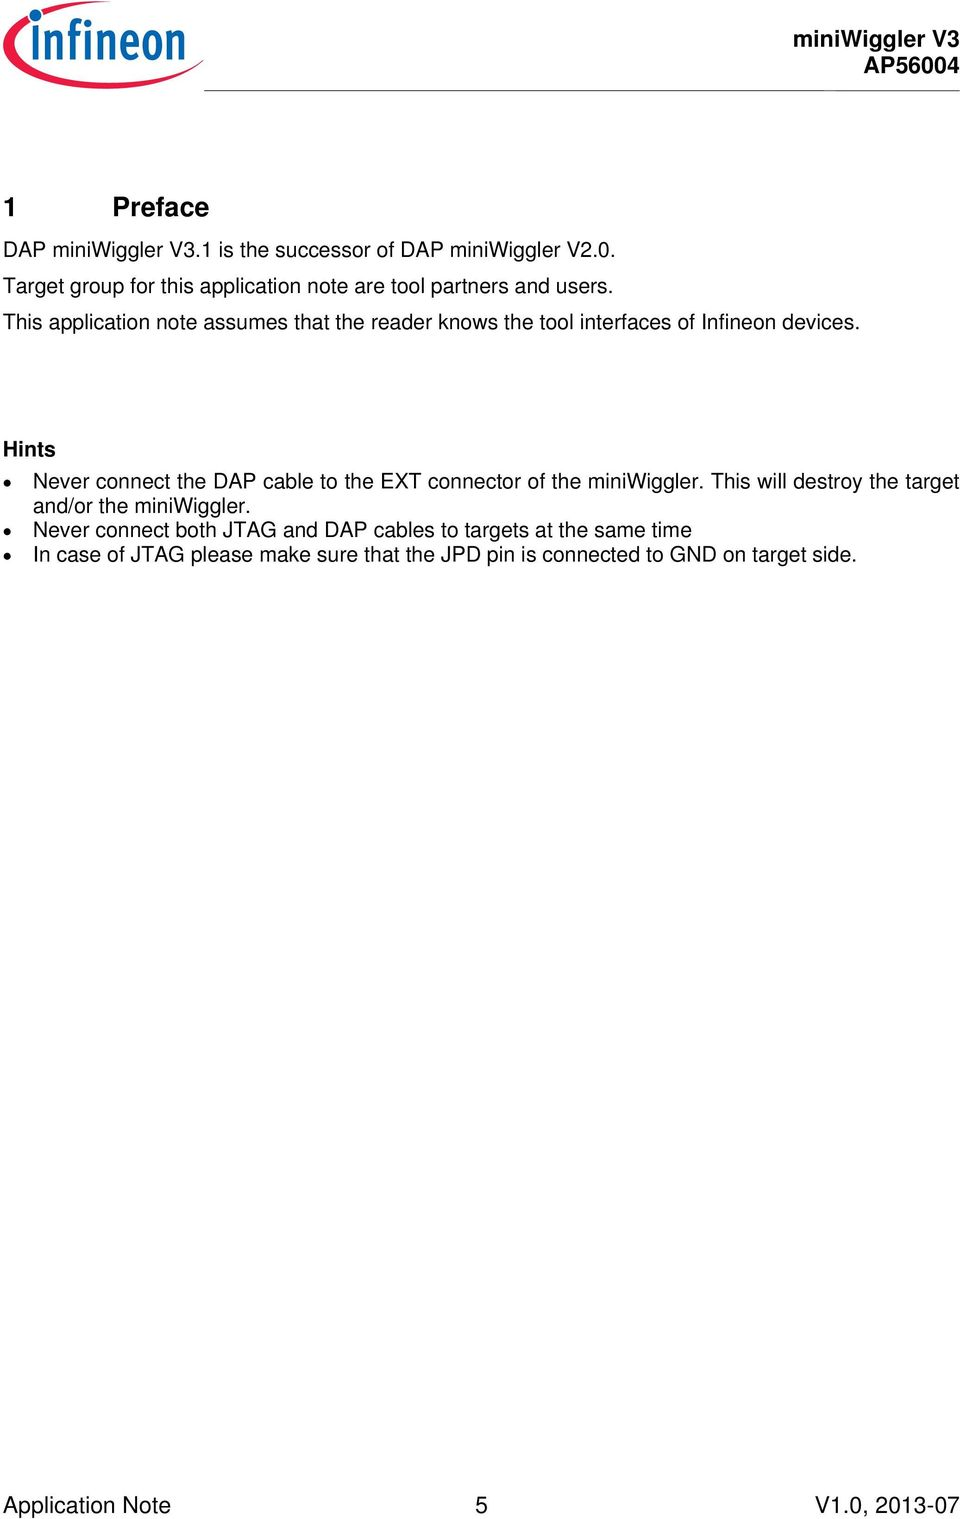 This Application Note Assumes That The Reader Knows The Tool Interfaces Of  Infineon Devices.